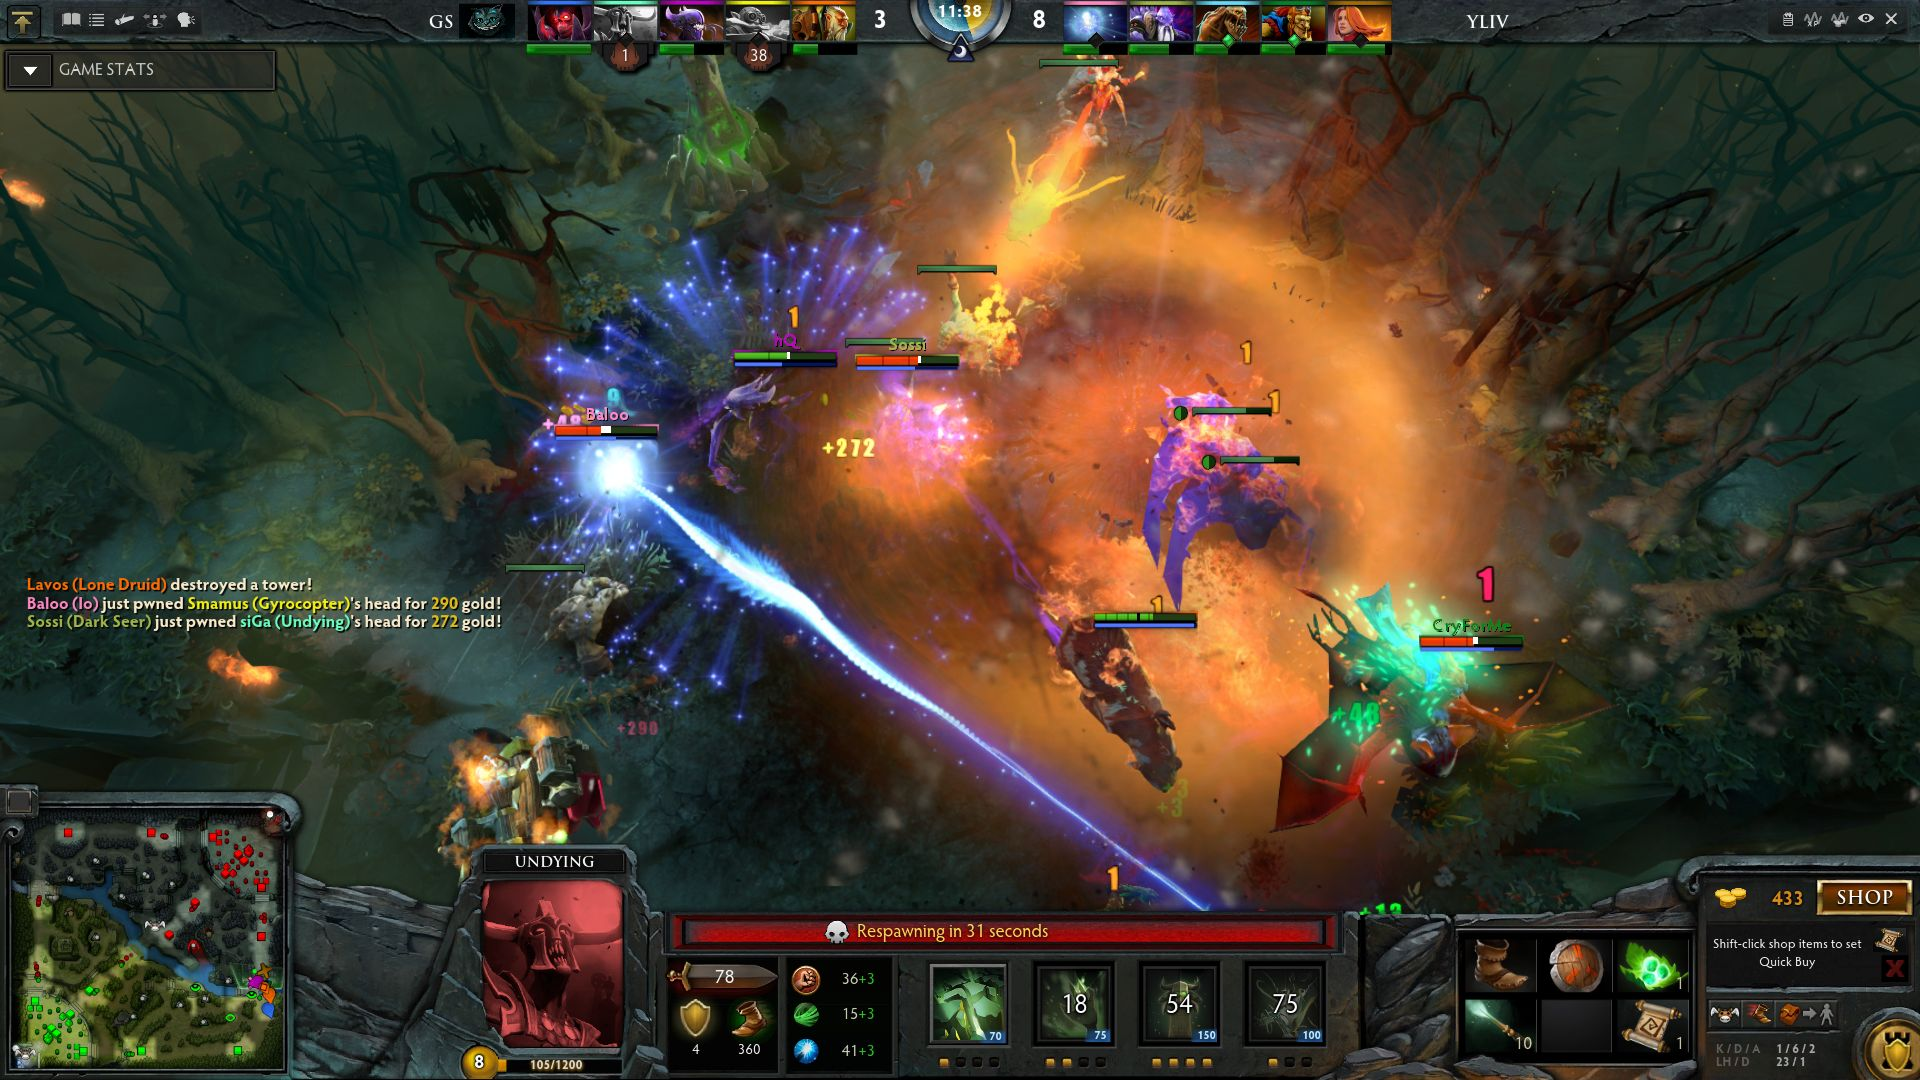 Dota 2 is more than a game -- it's a lifestyle.